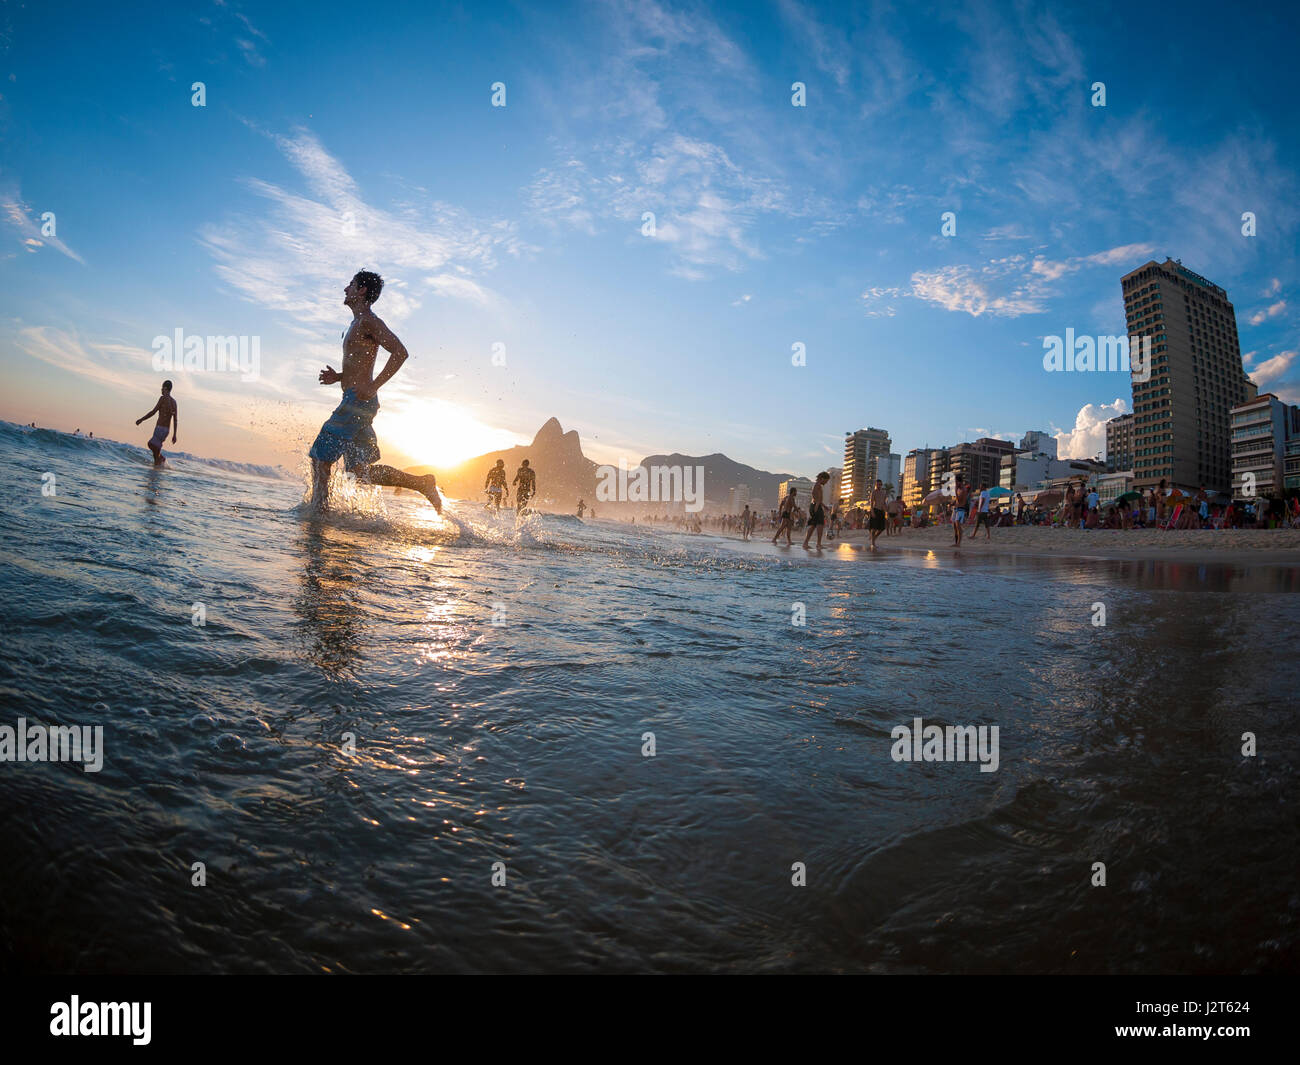 RIO DE JANEIRO - FEBRUARY 2, 2013: Silhouettes pass in front of the sunset on the shore of Ipanema Beach. - Stock Image